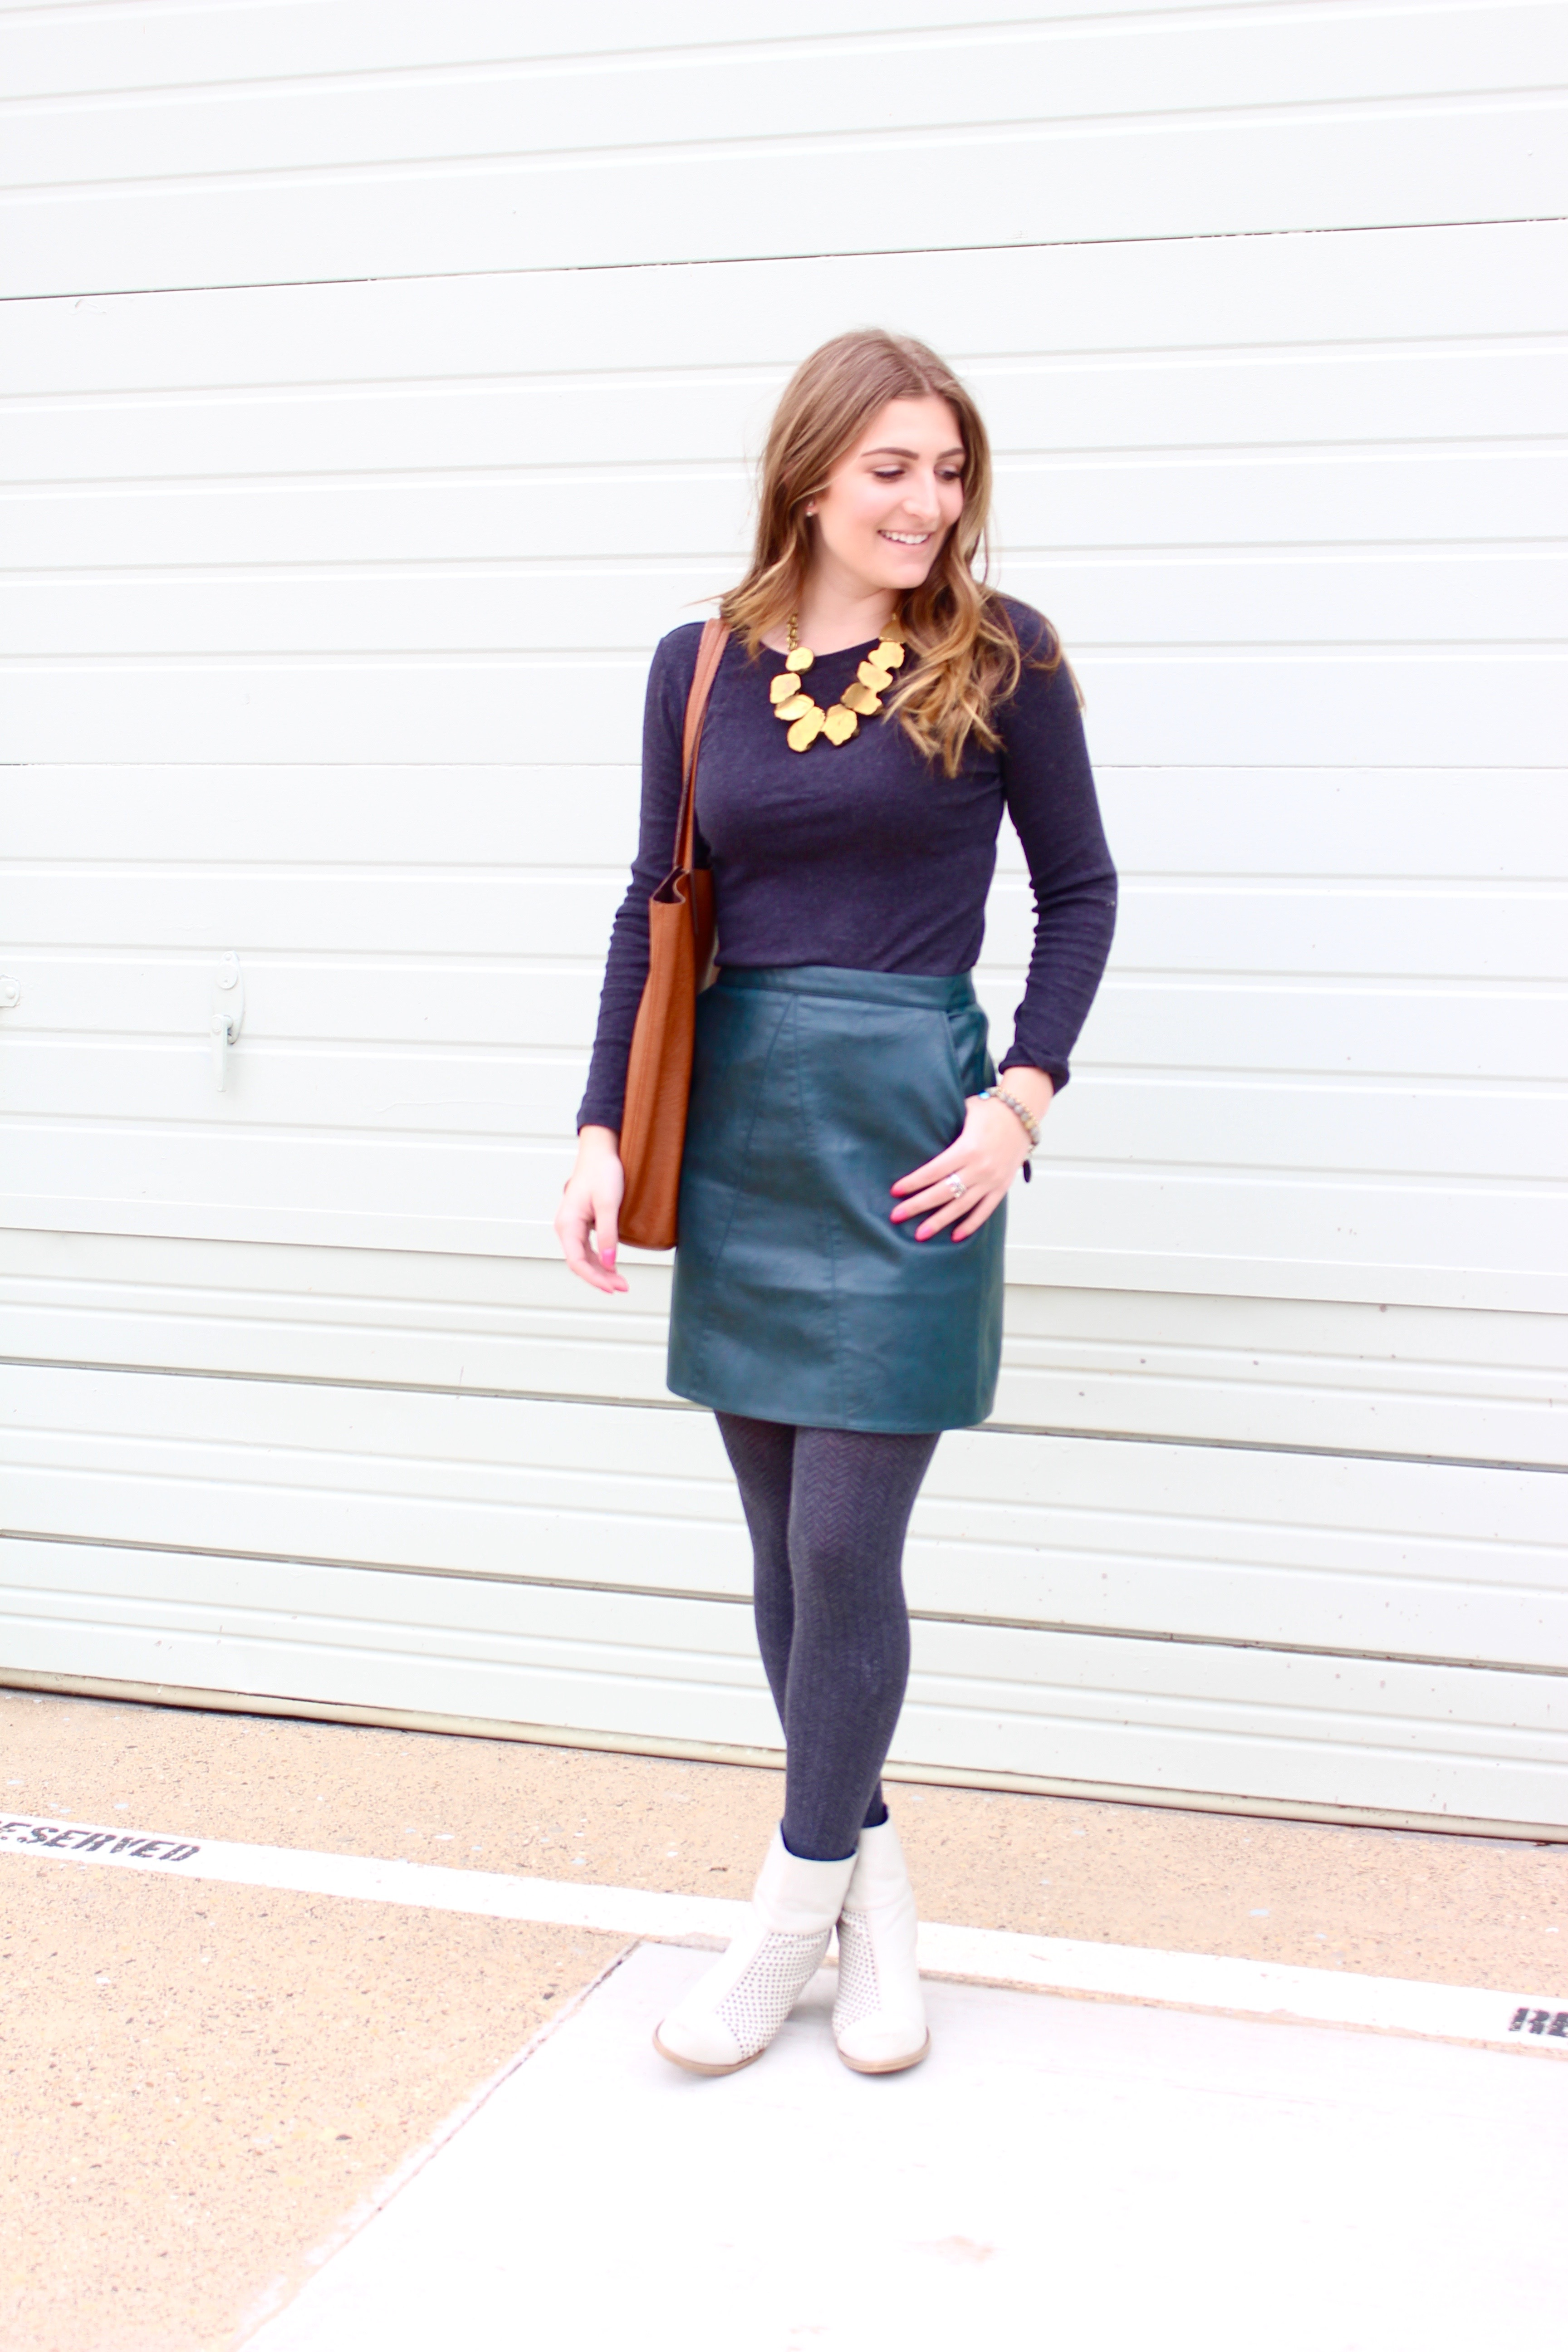 70's kind of look with green leather skirt - Green Leather Skirt by popular Texas fashion blogger Audrey Madison Stowe